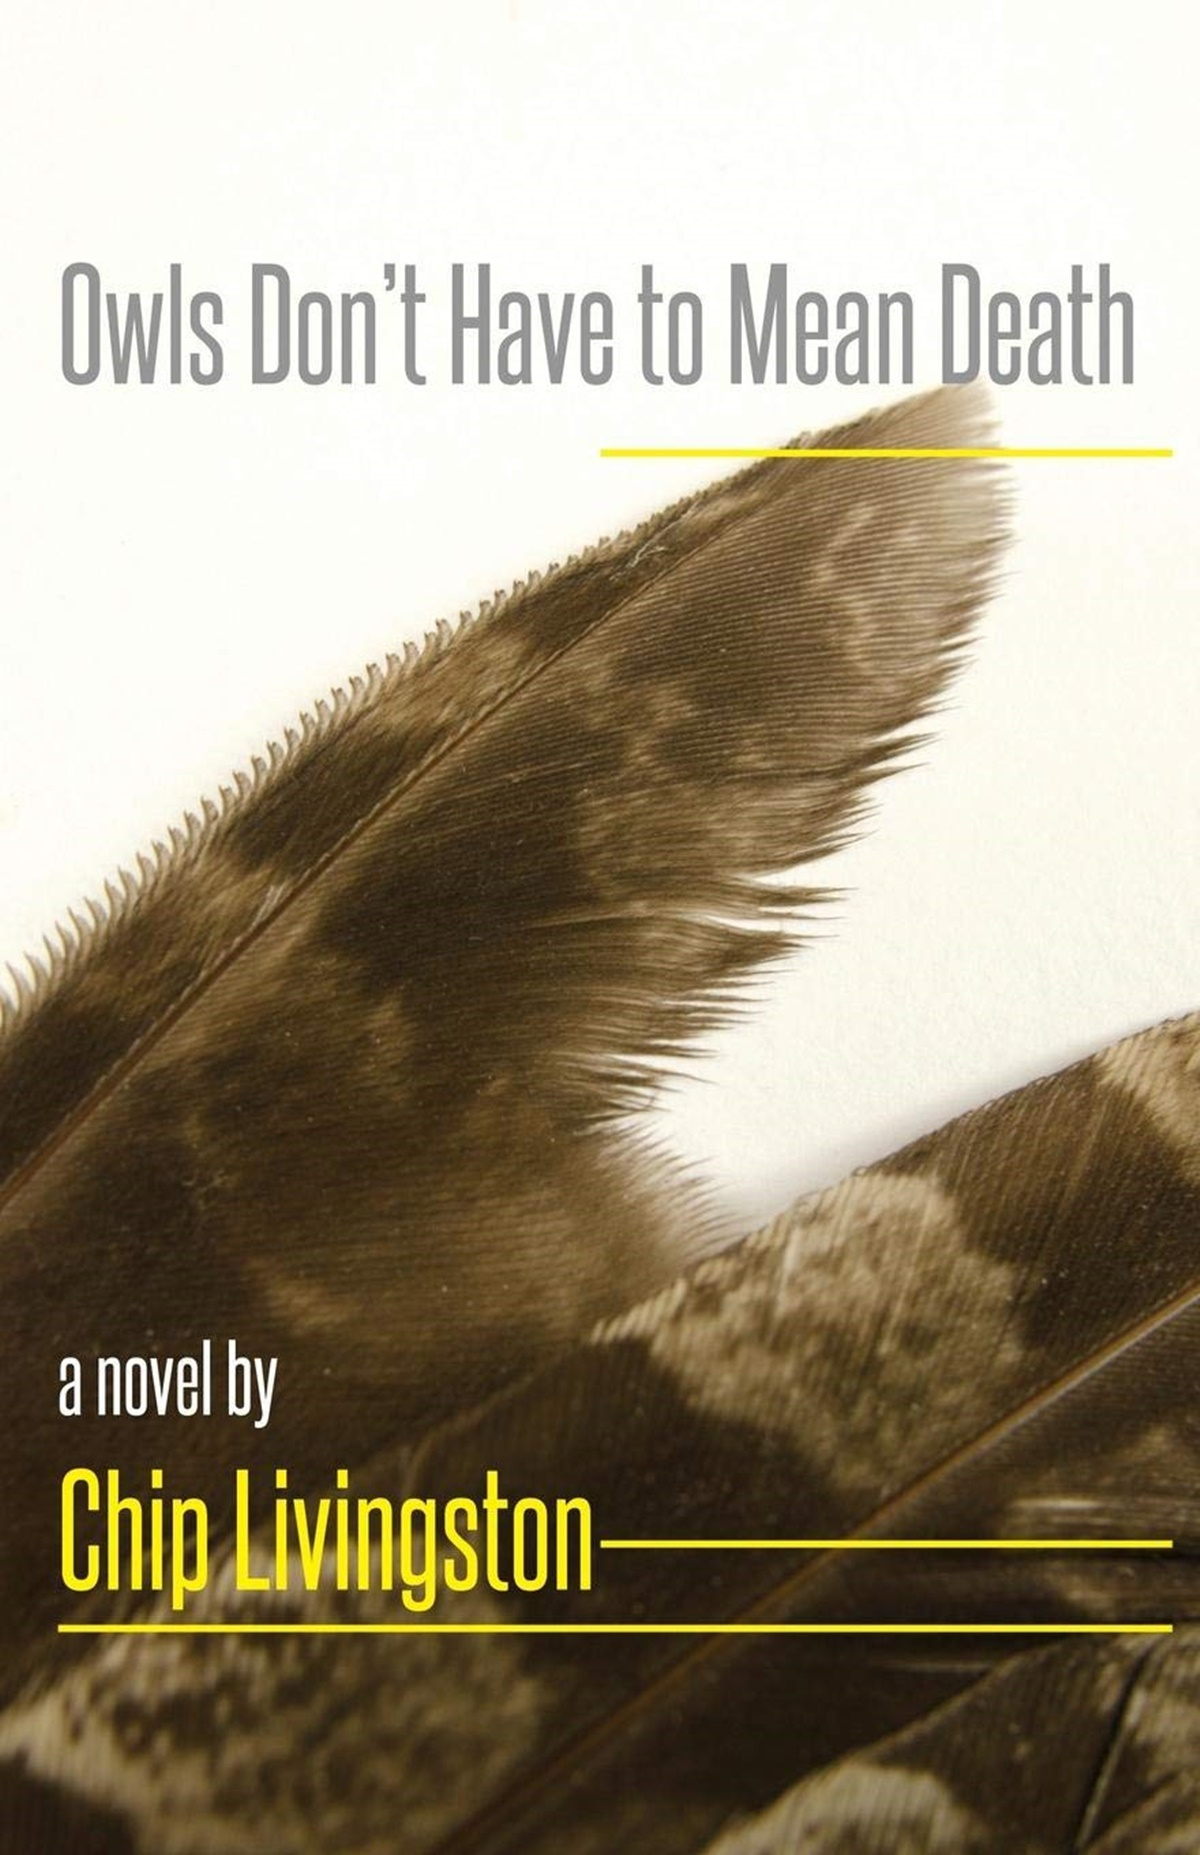 Native American Romance Novels, cover of Owls Don't Have to Mean Death by Chip Livingston, books